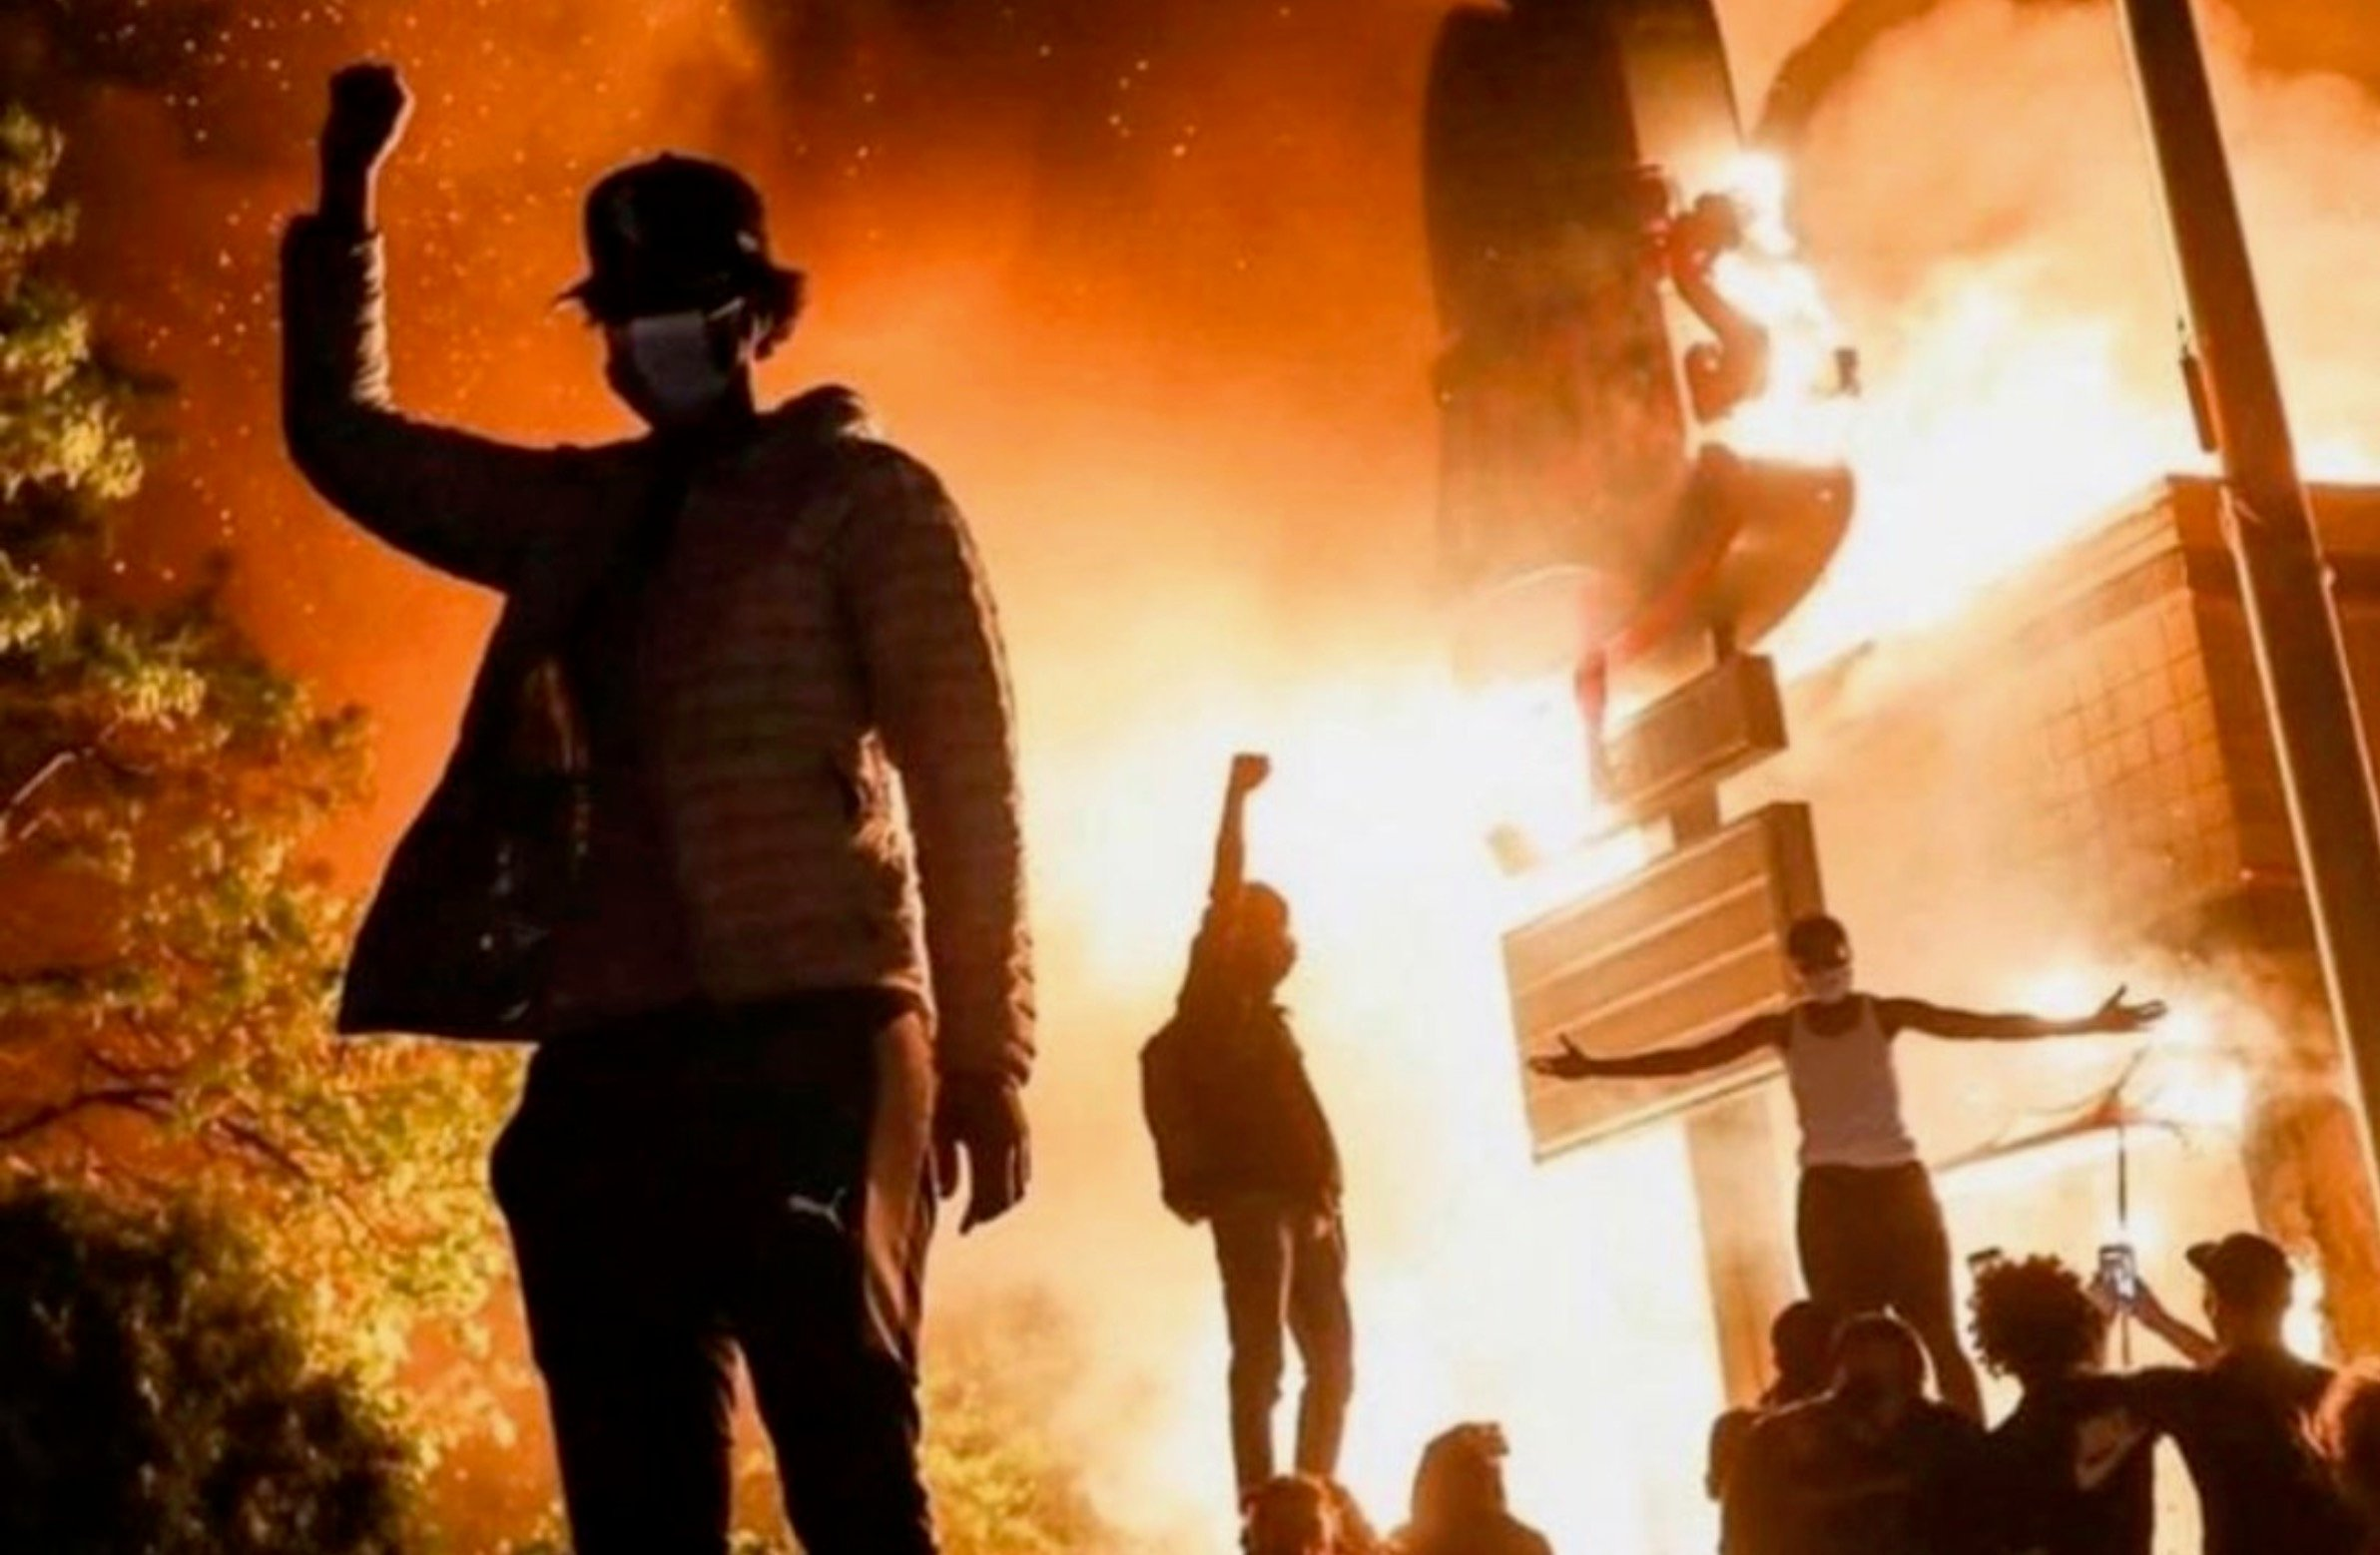 The Latest Race Riots: Justified Rage, Unjustified Violence